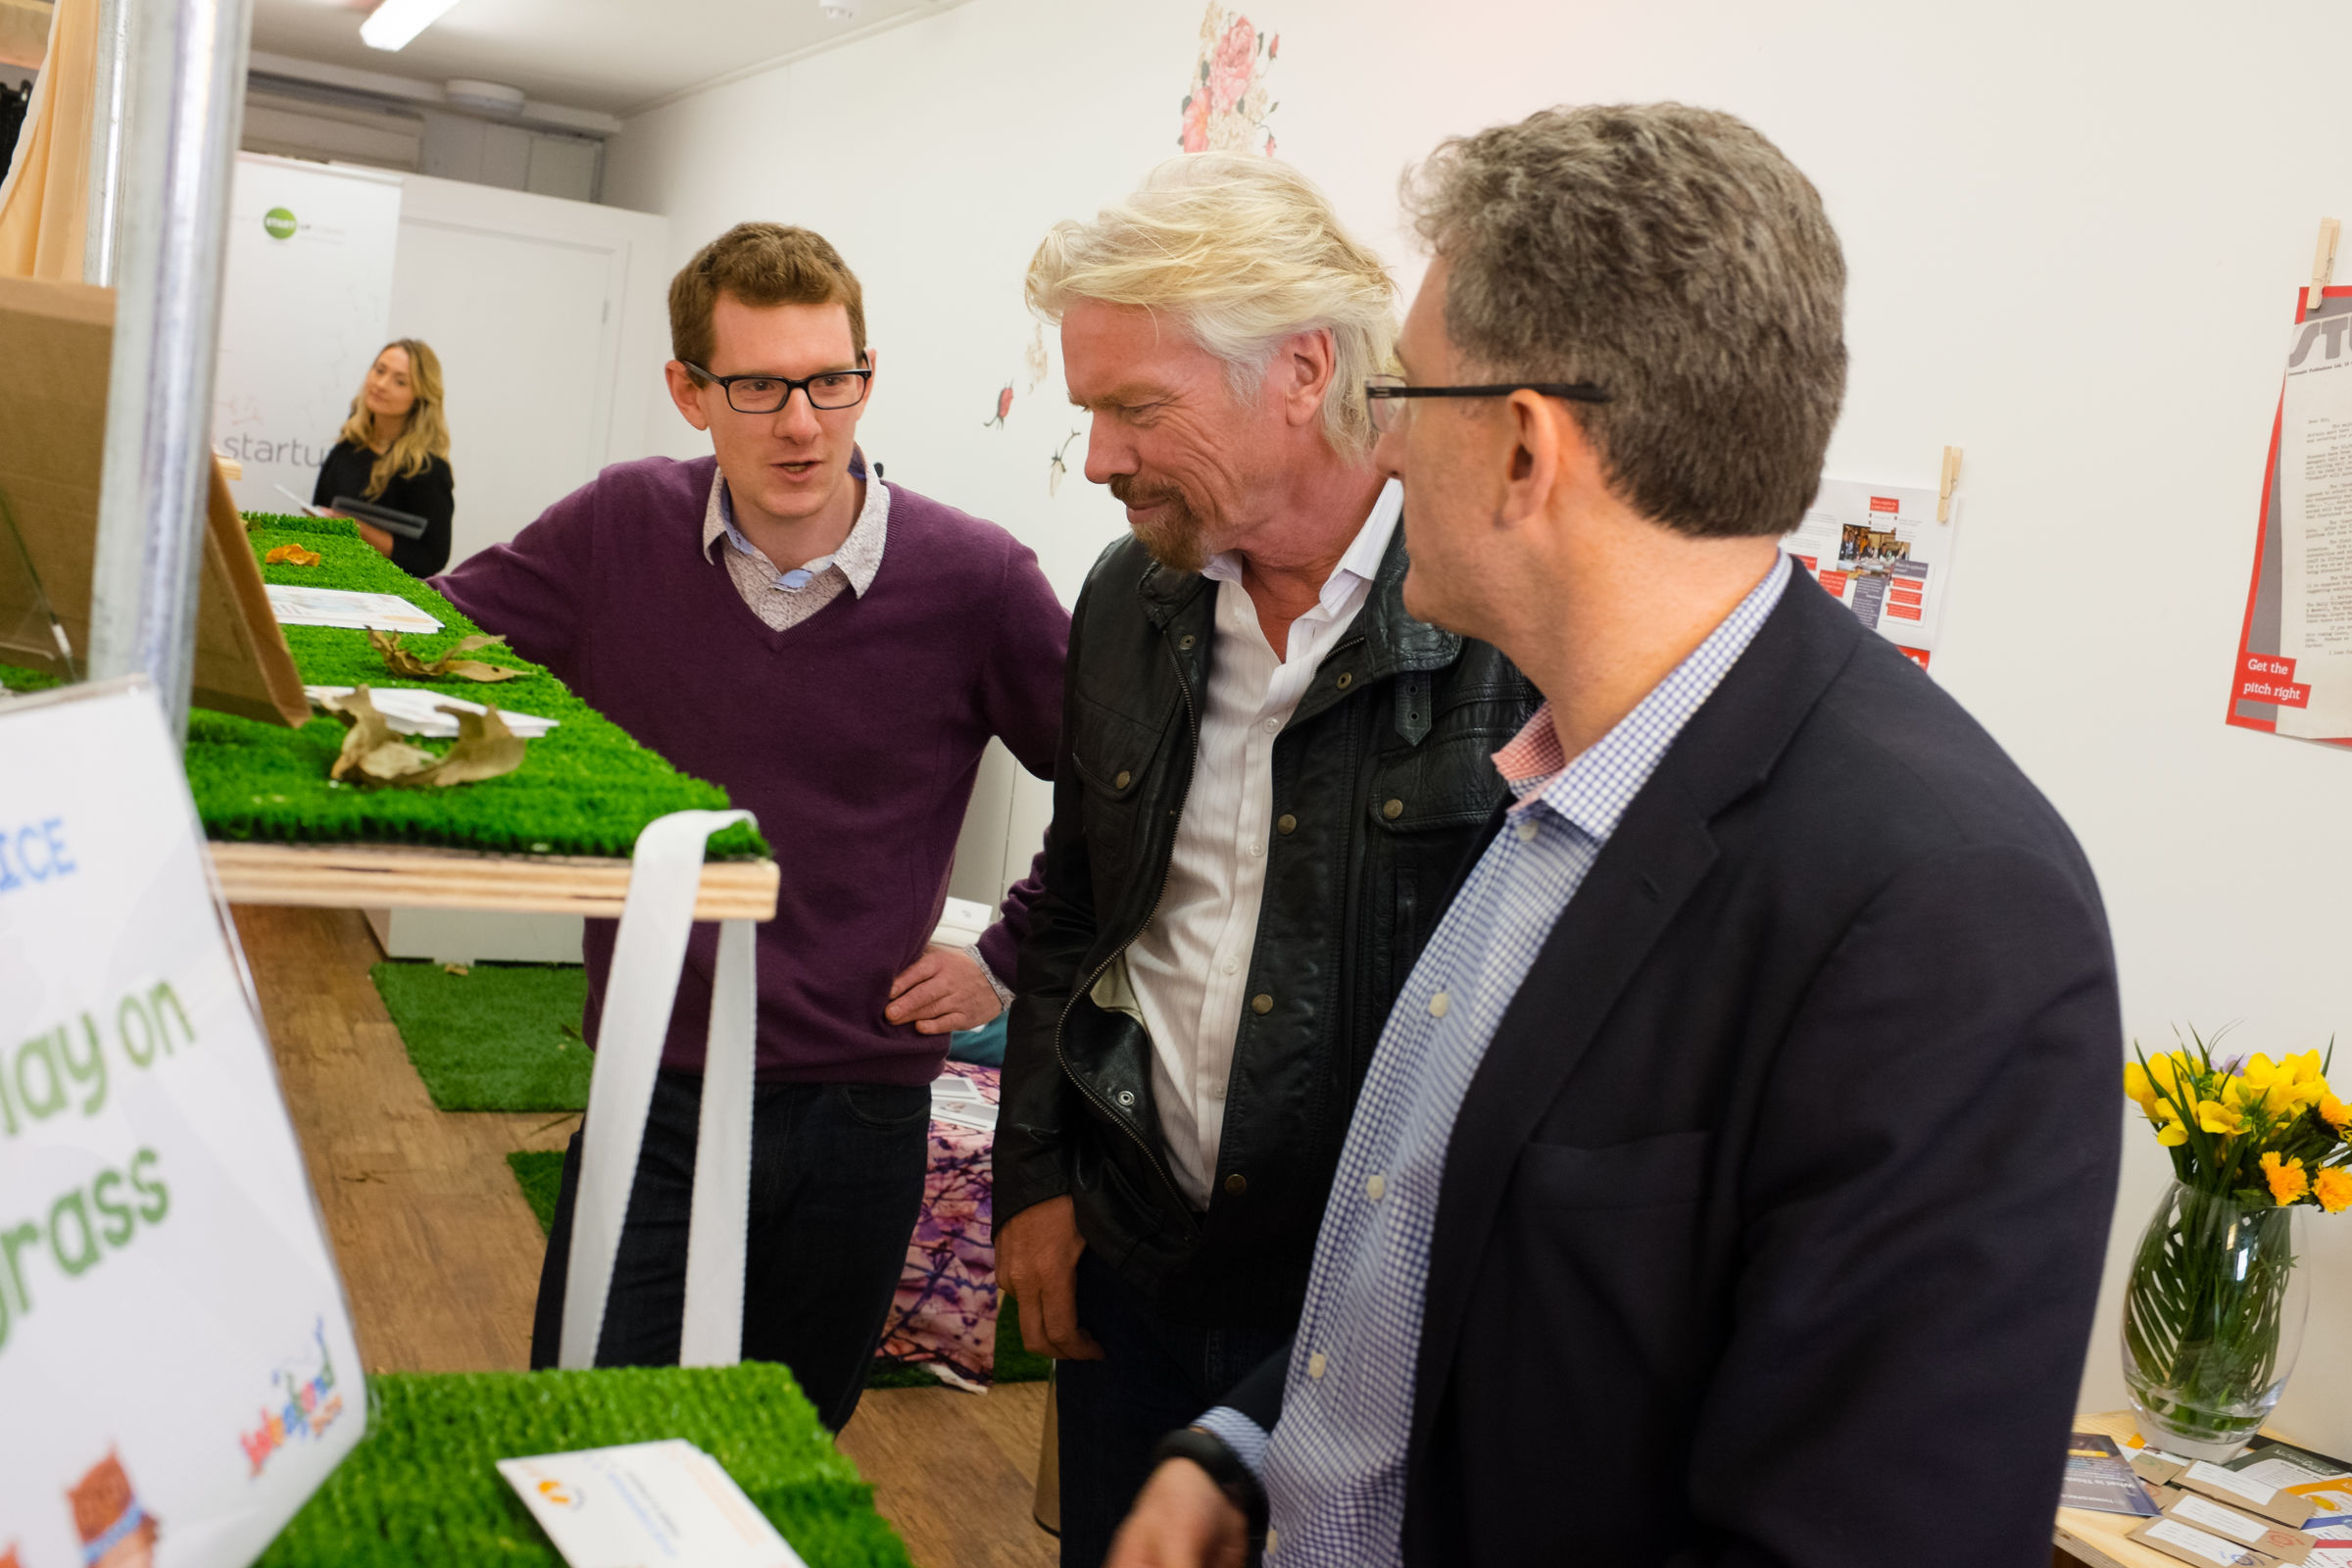 Richard Branson Virgin StartUp launch